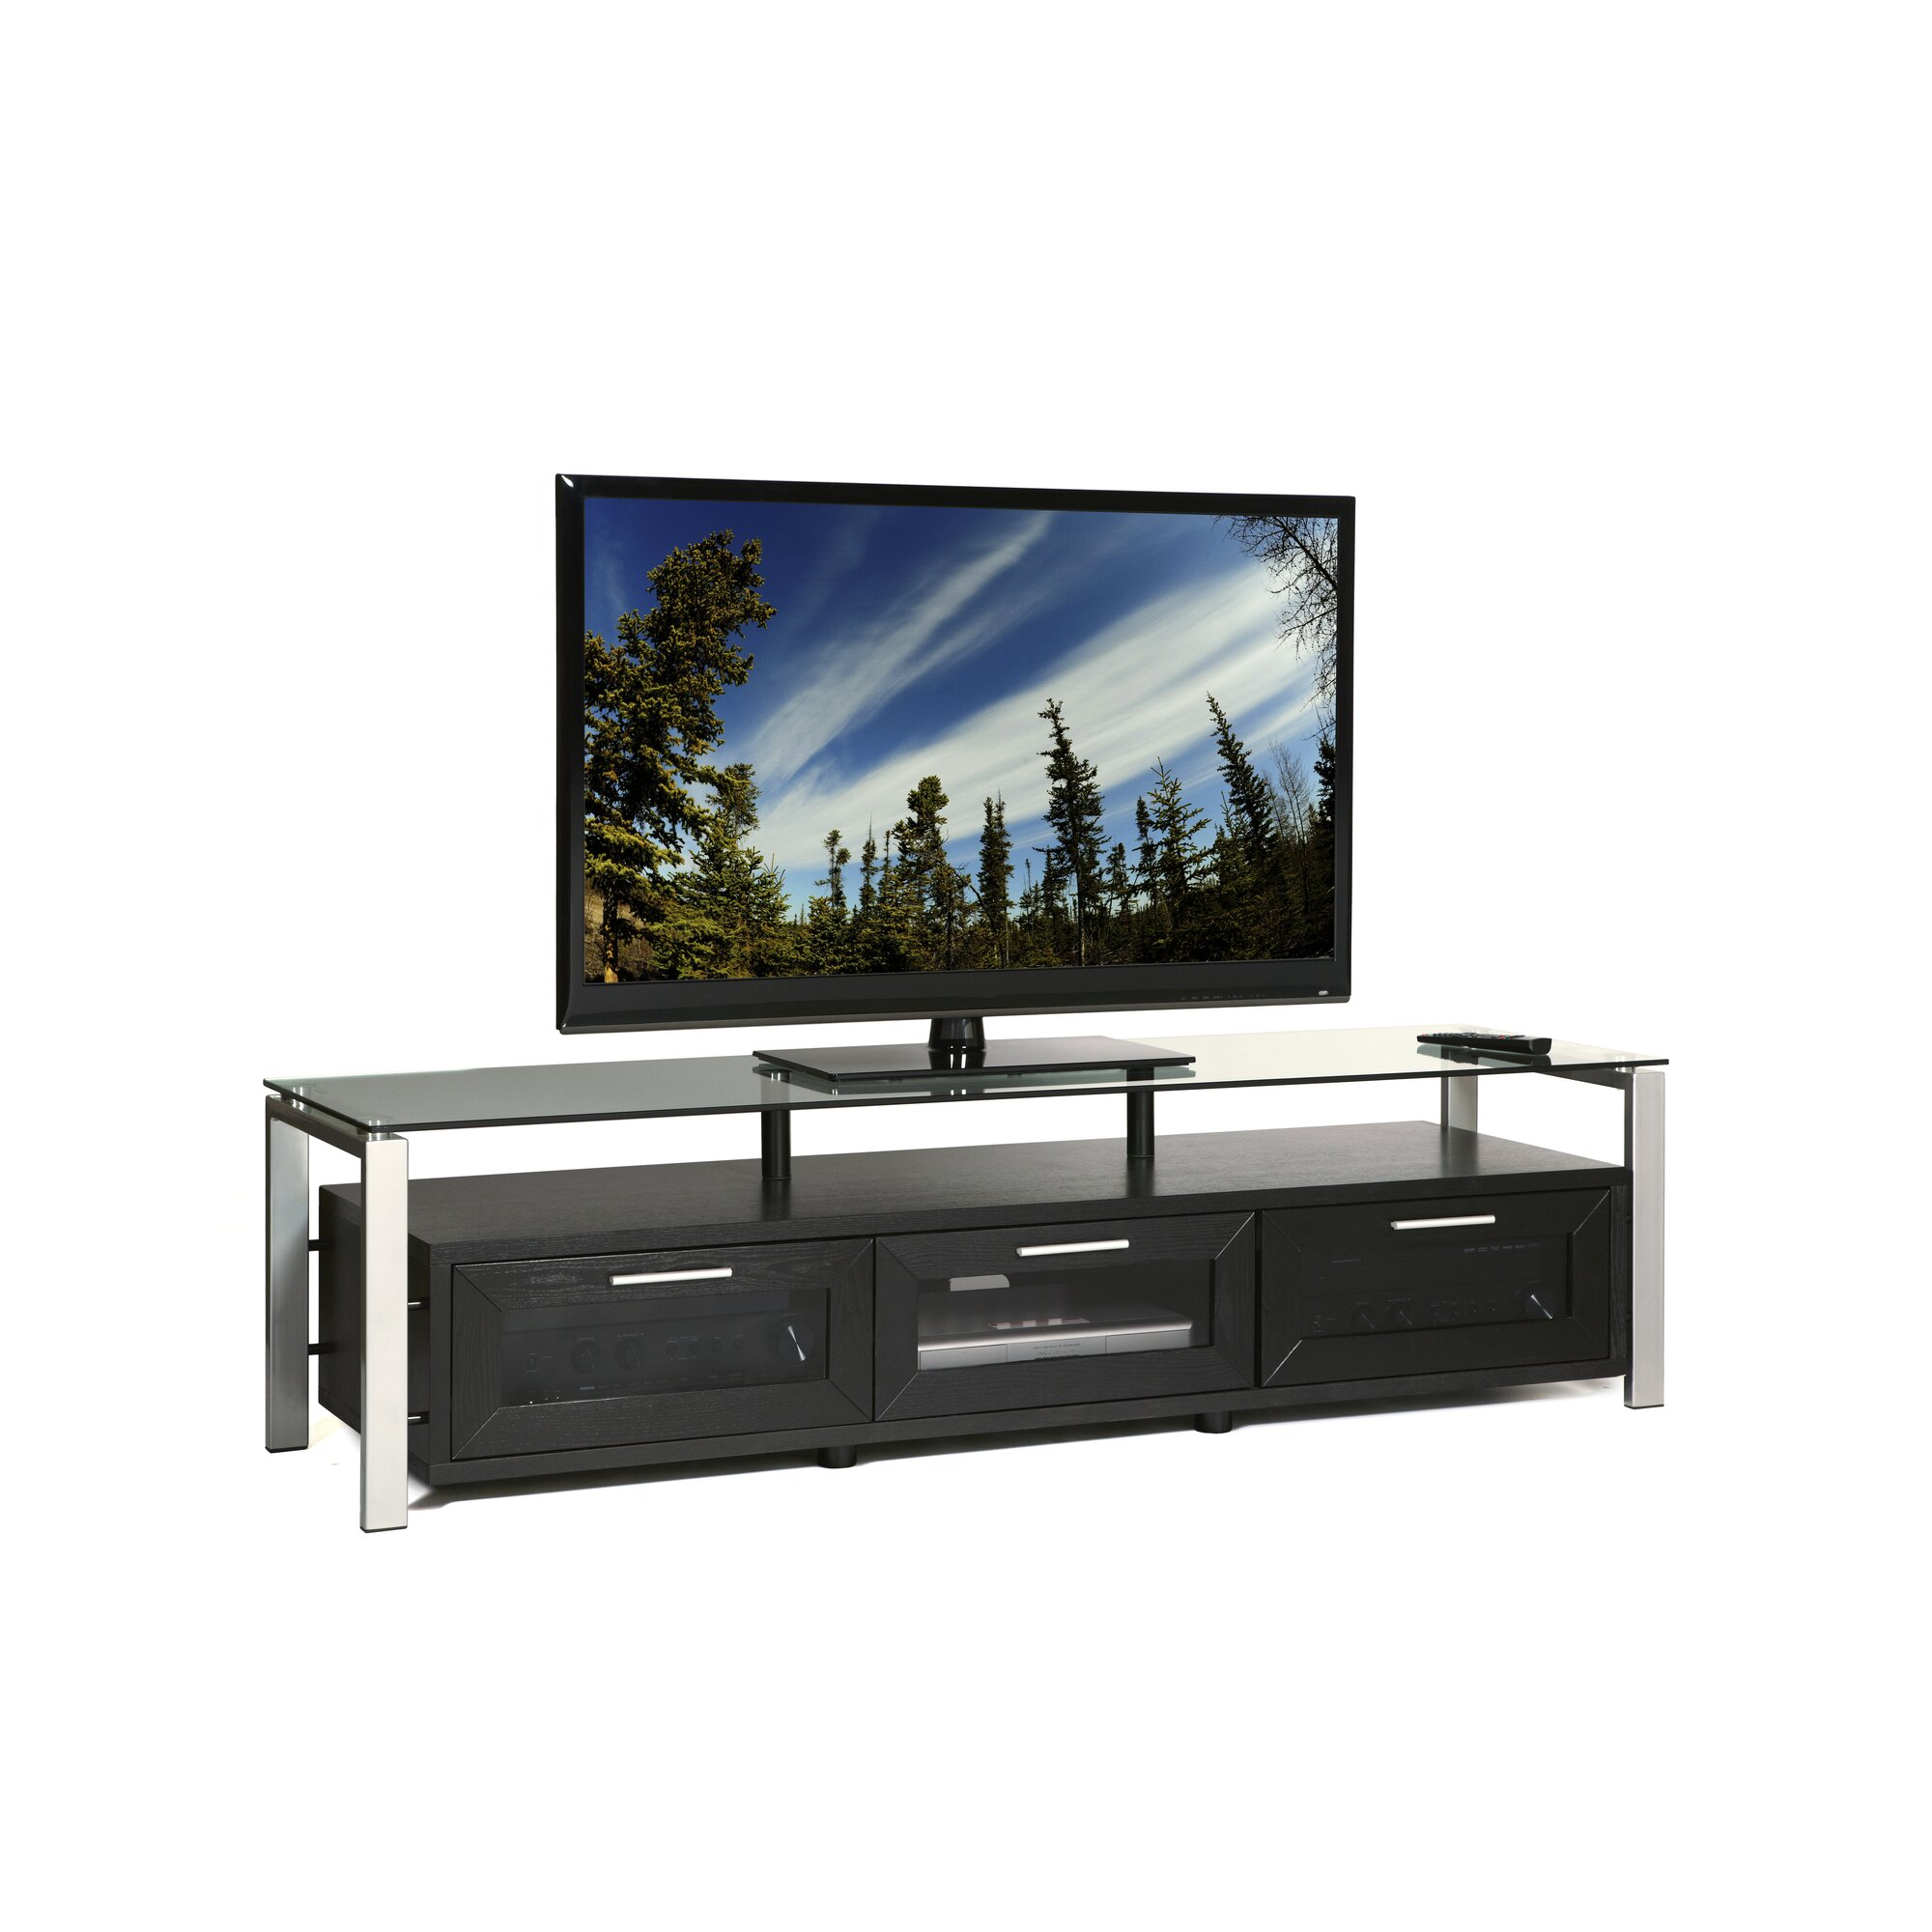 Tv Stand Decor Decor For Tv Stand